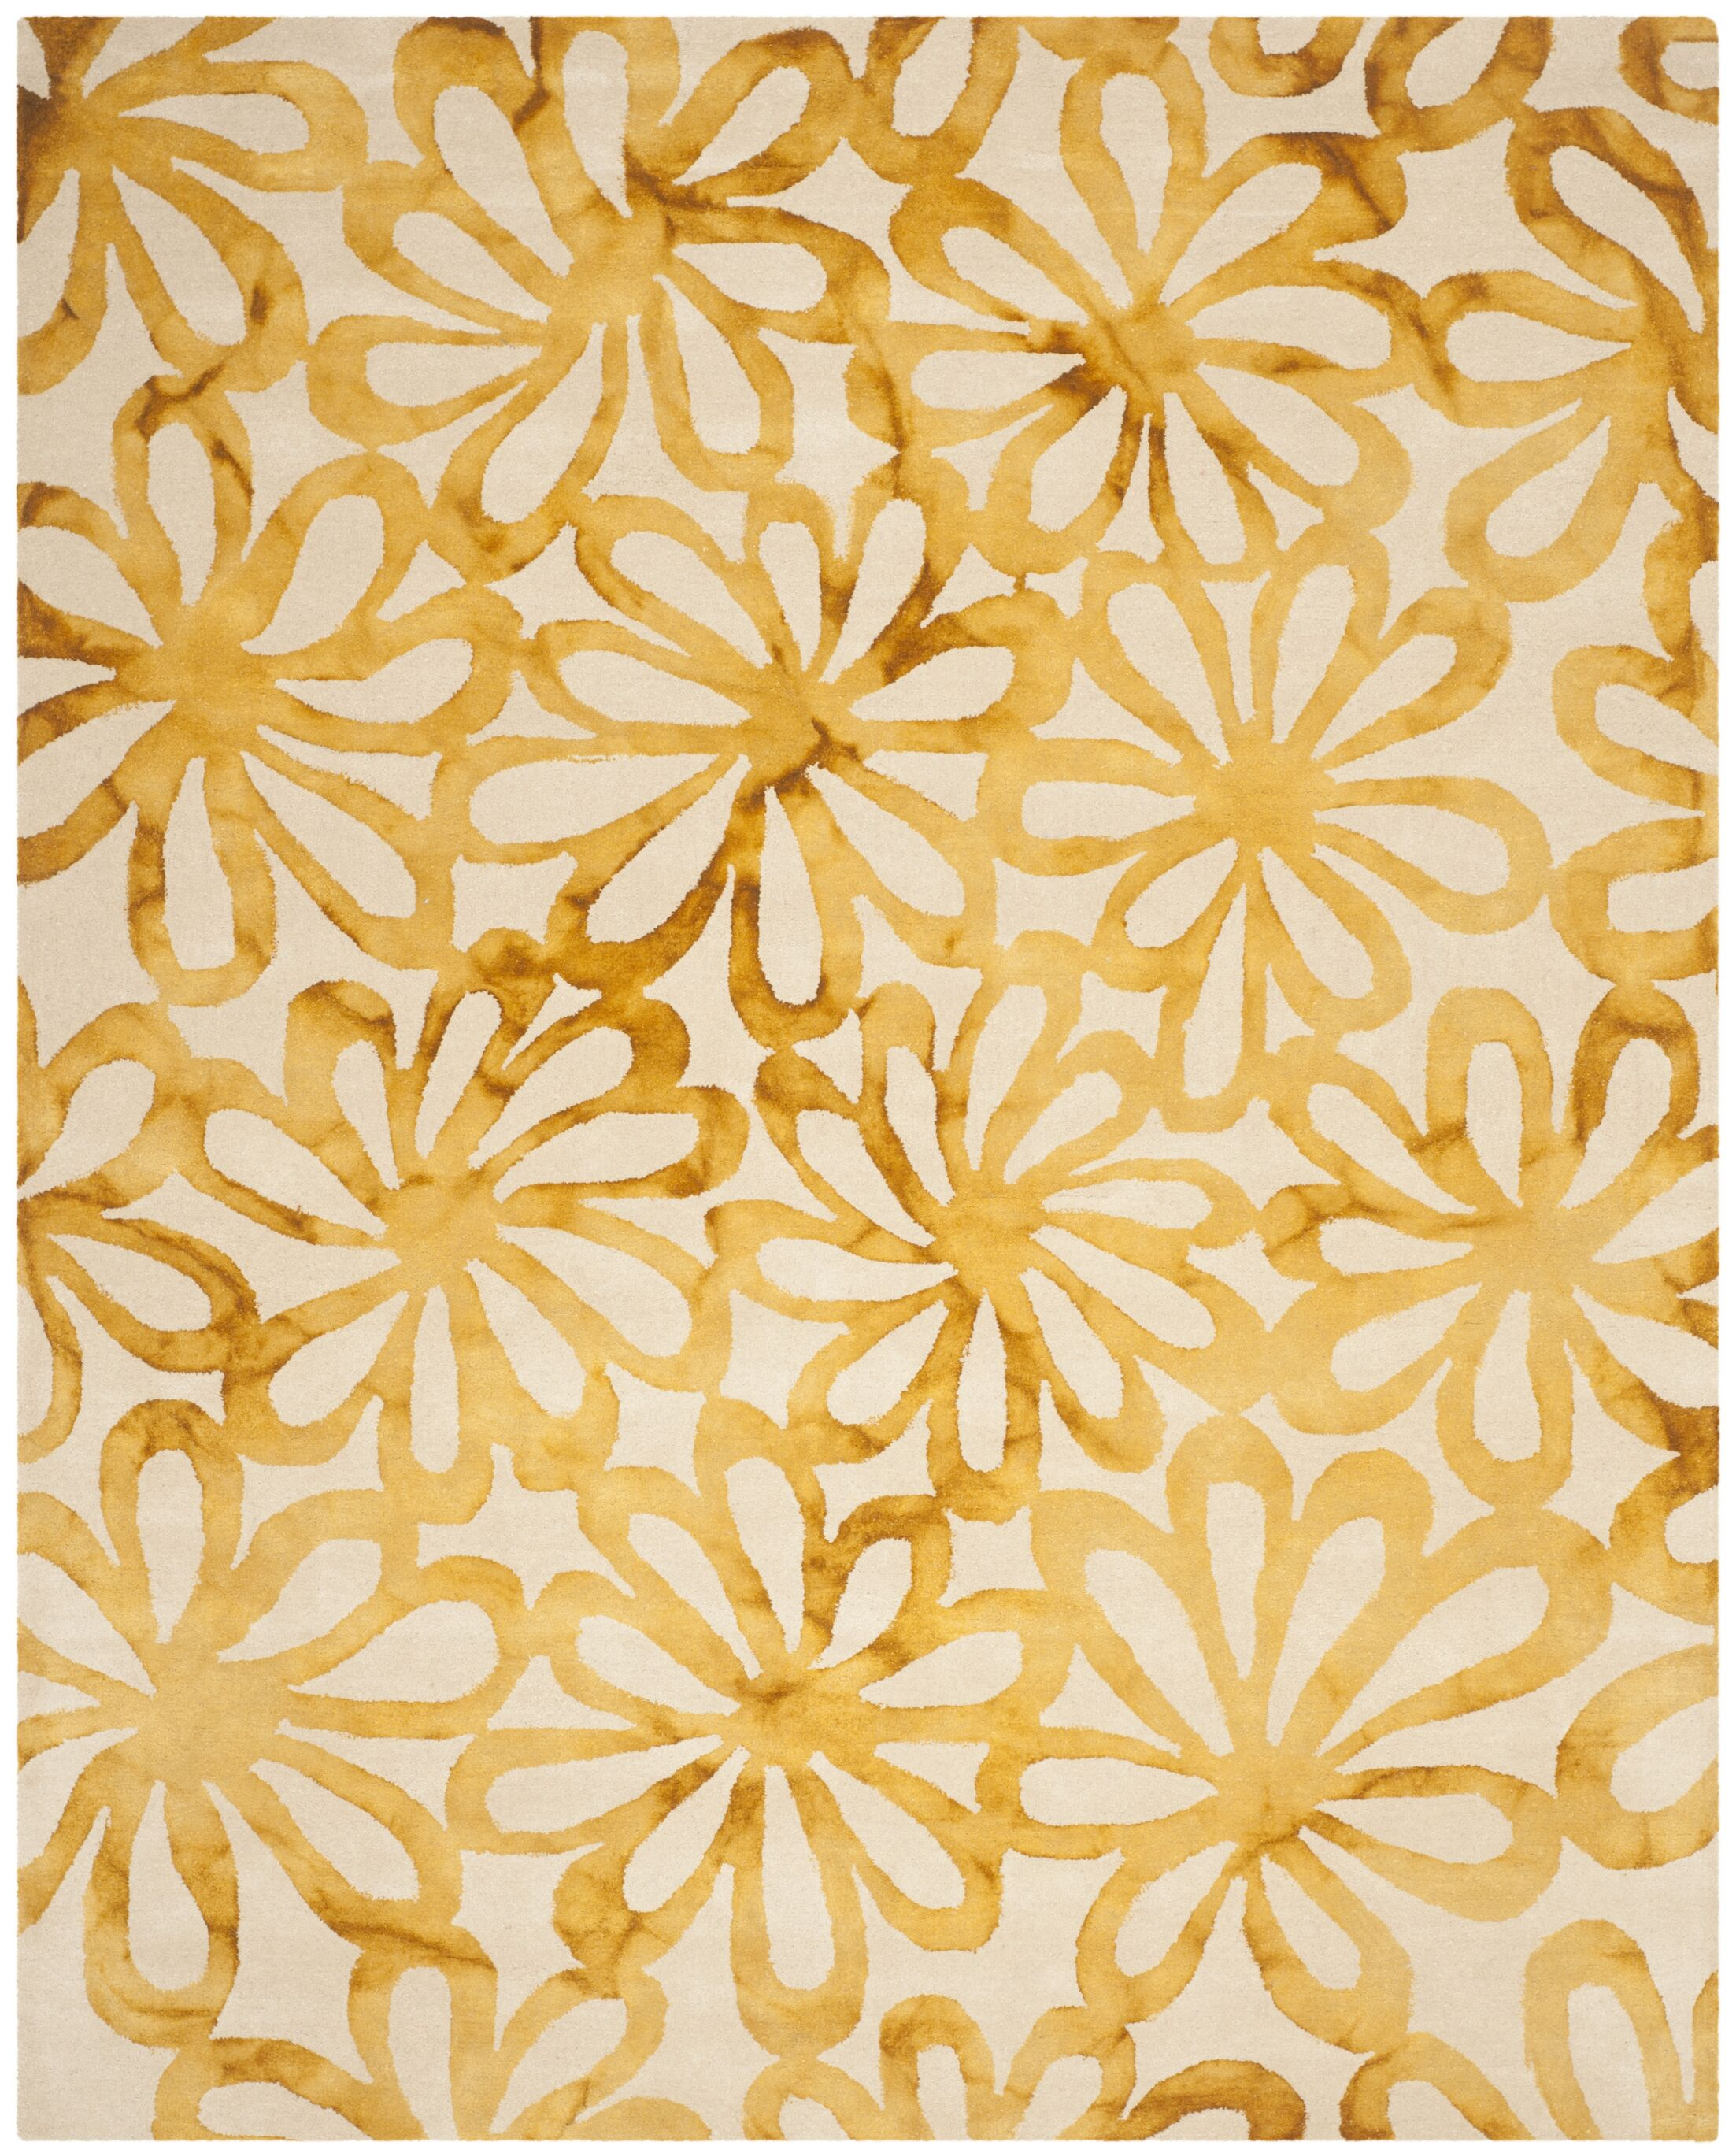 Hand-Tufted Beige & Gold Area Rug Rug Size: Rectangle 8' x 10'